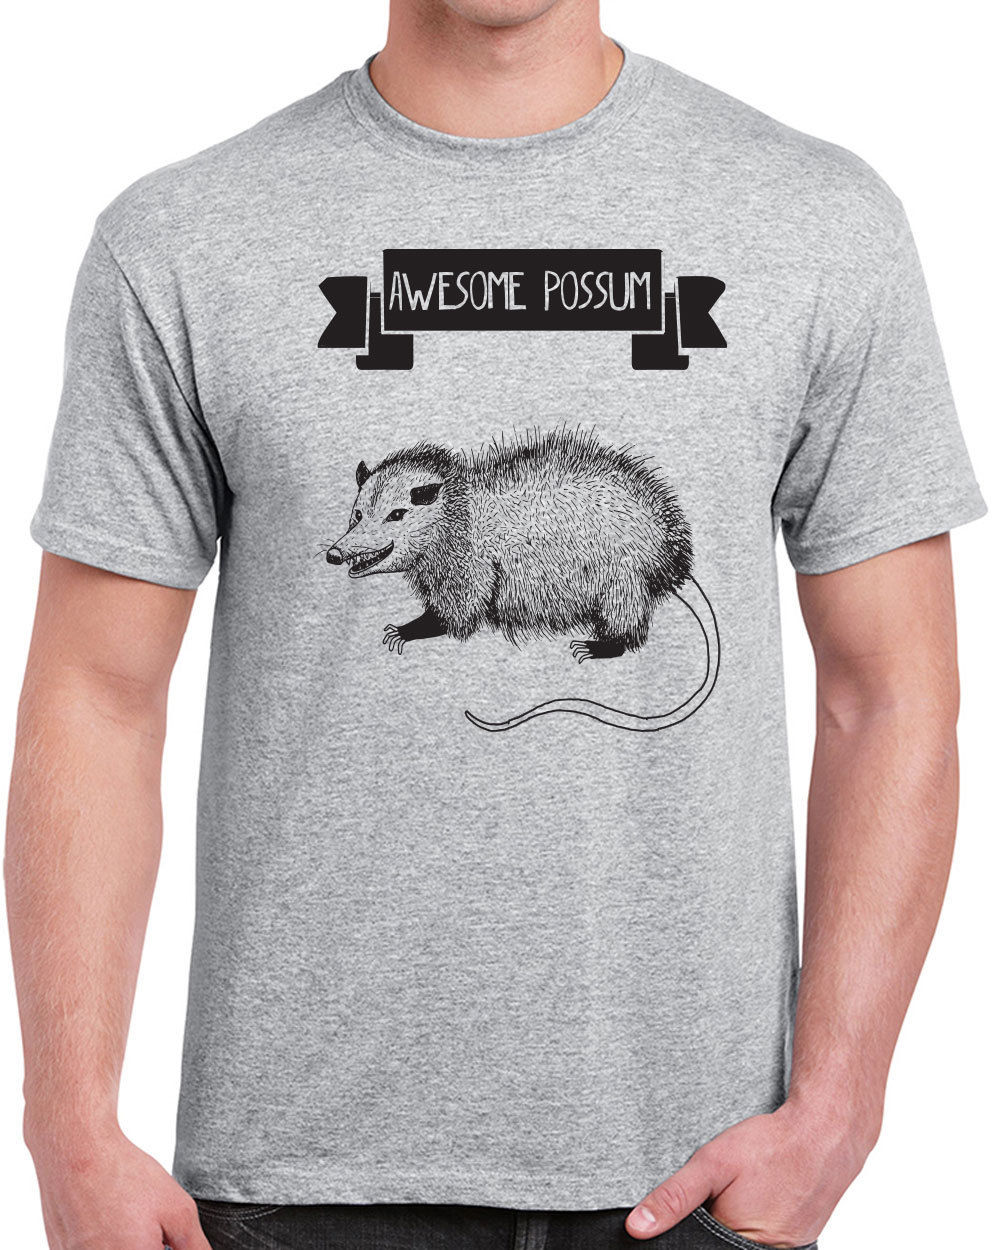 378 Awesome Possum mens T-shirt funny t-shirt mammal animal lover vegan shirt Simple Style